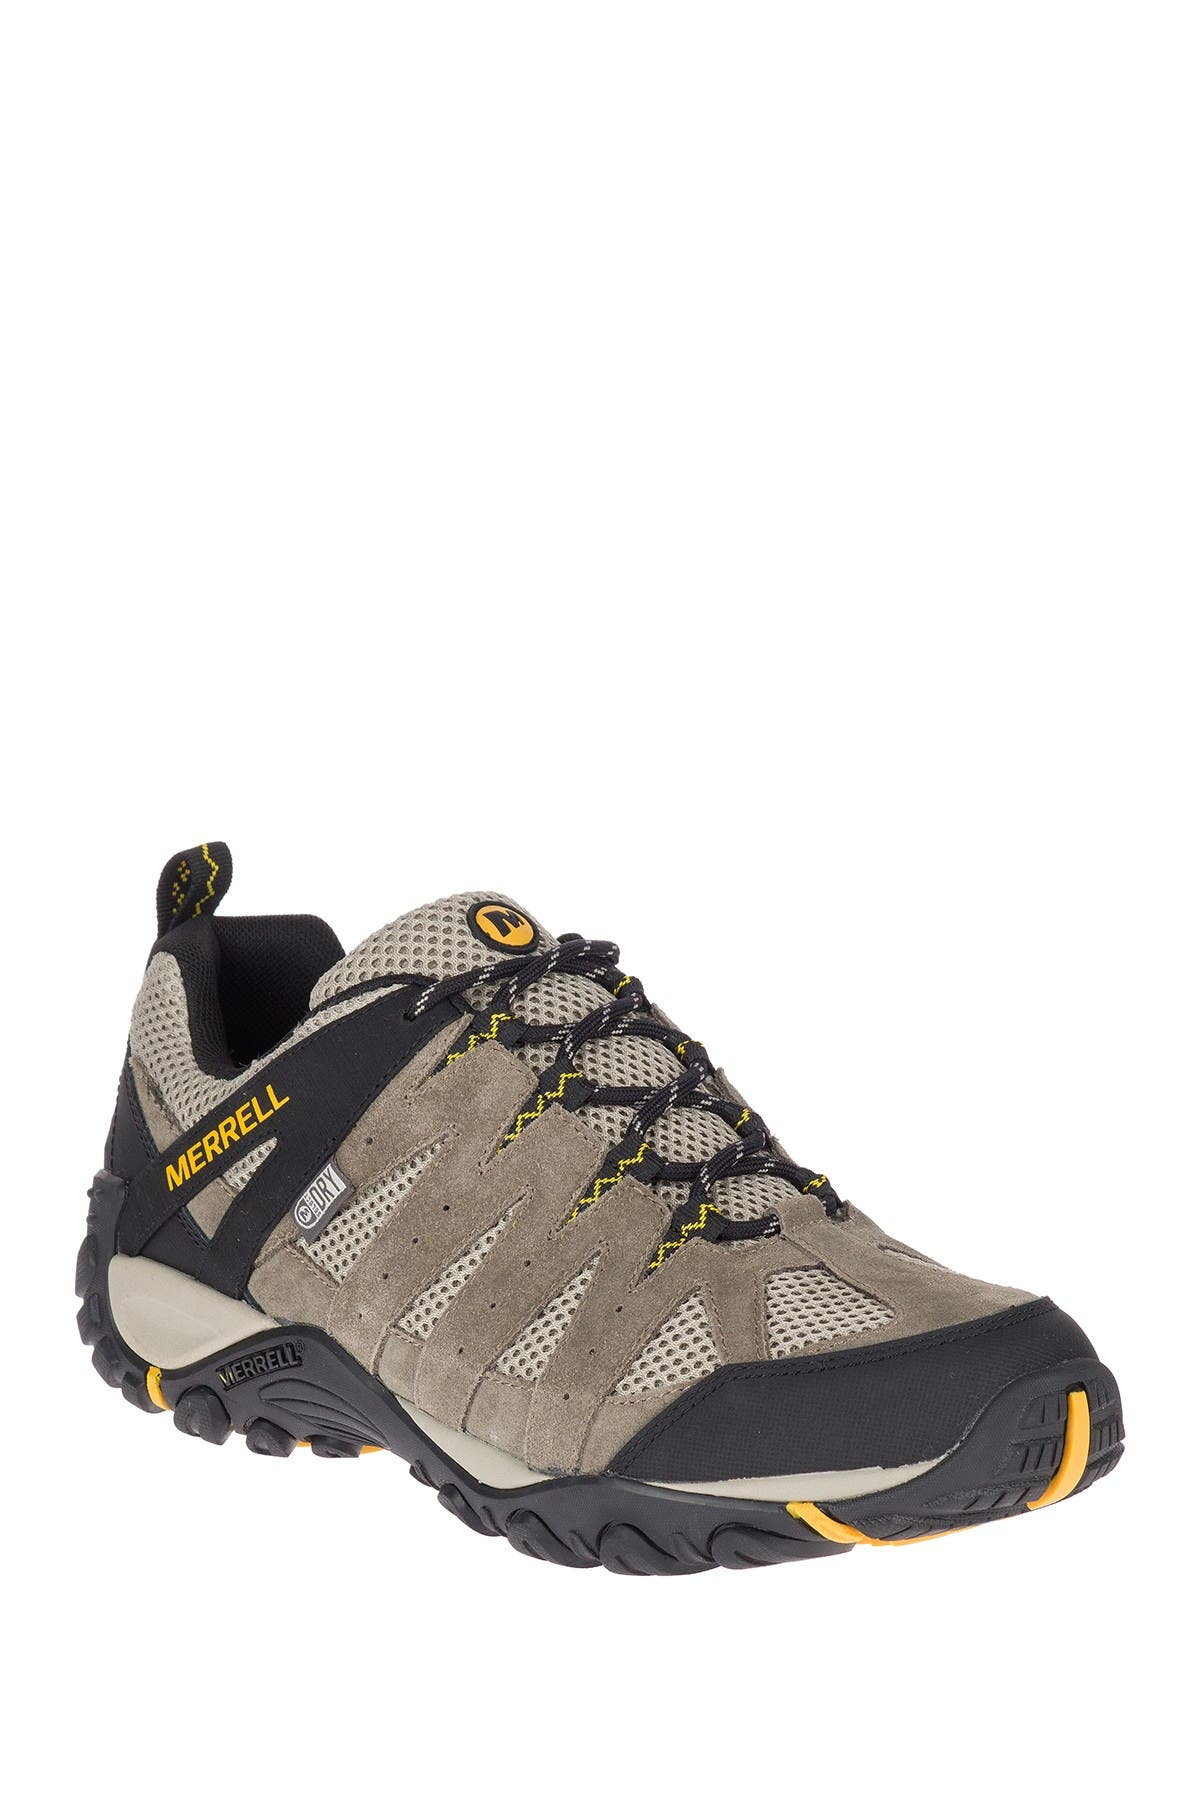 Accentor 2 Vent Waterproof Hiking Boot